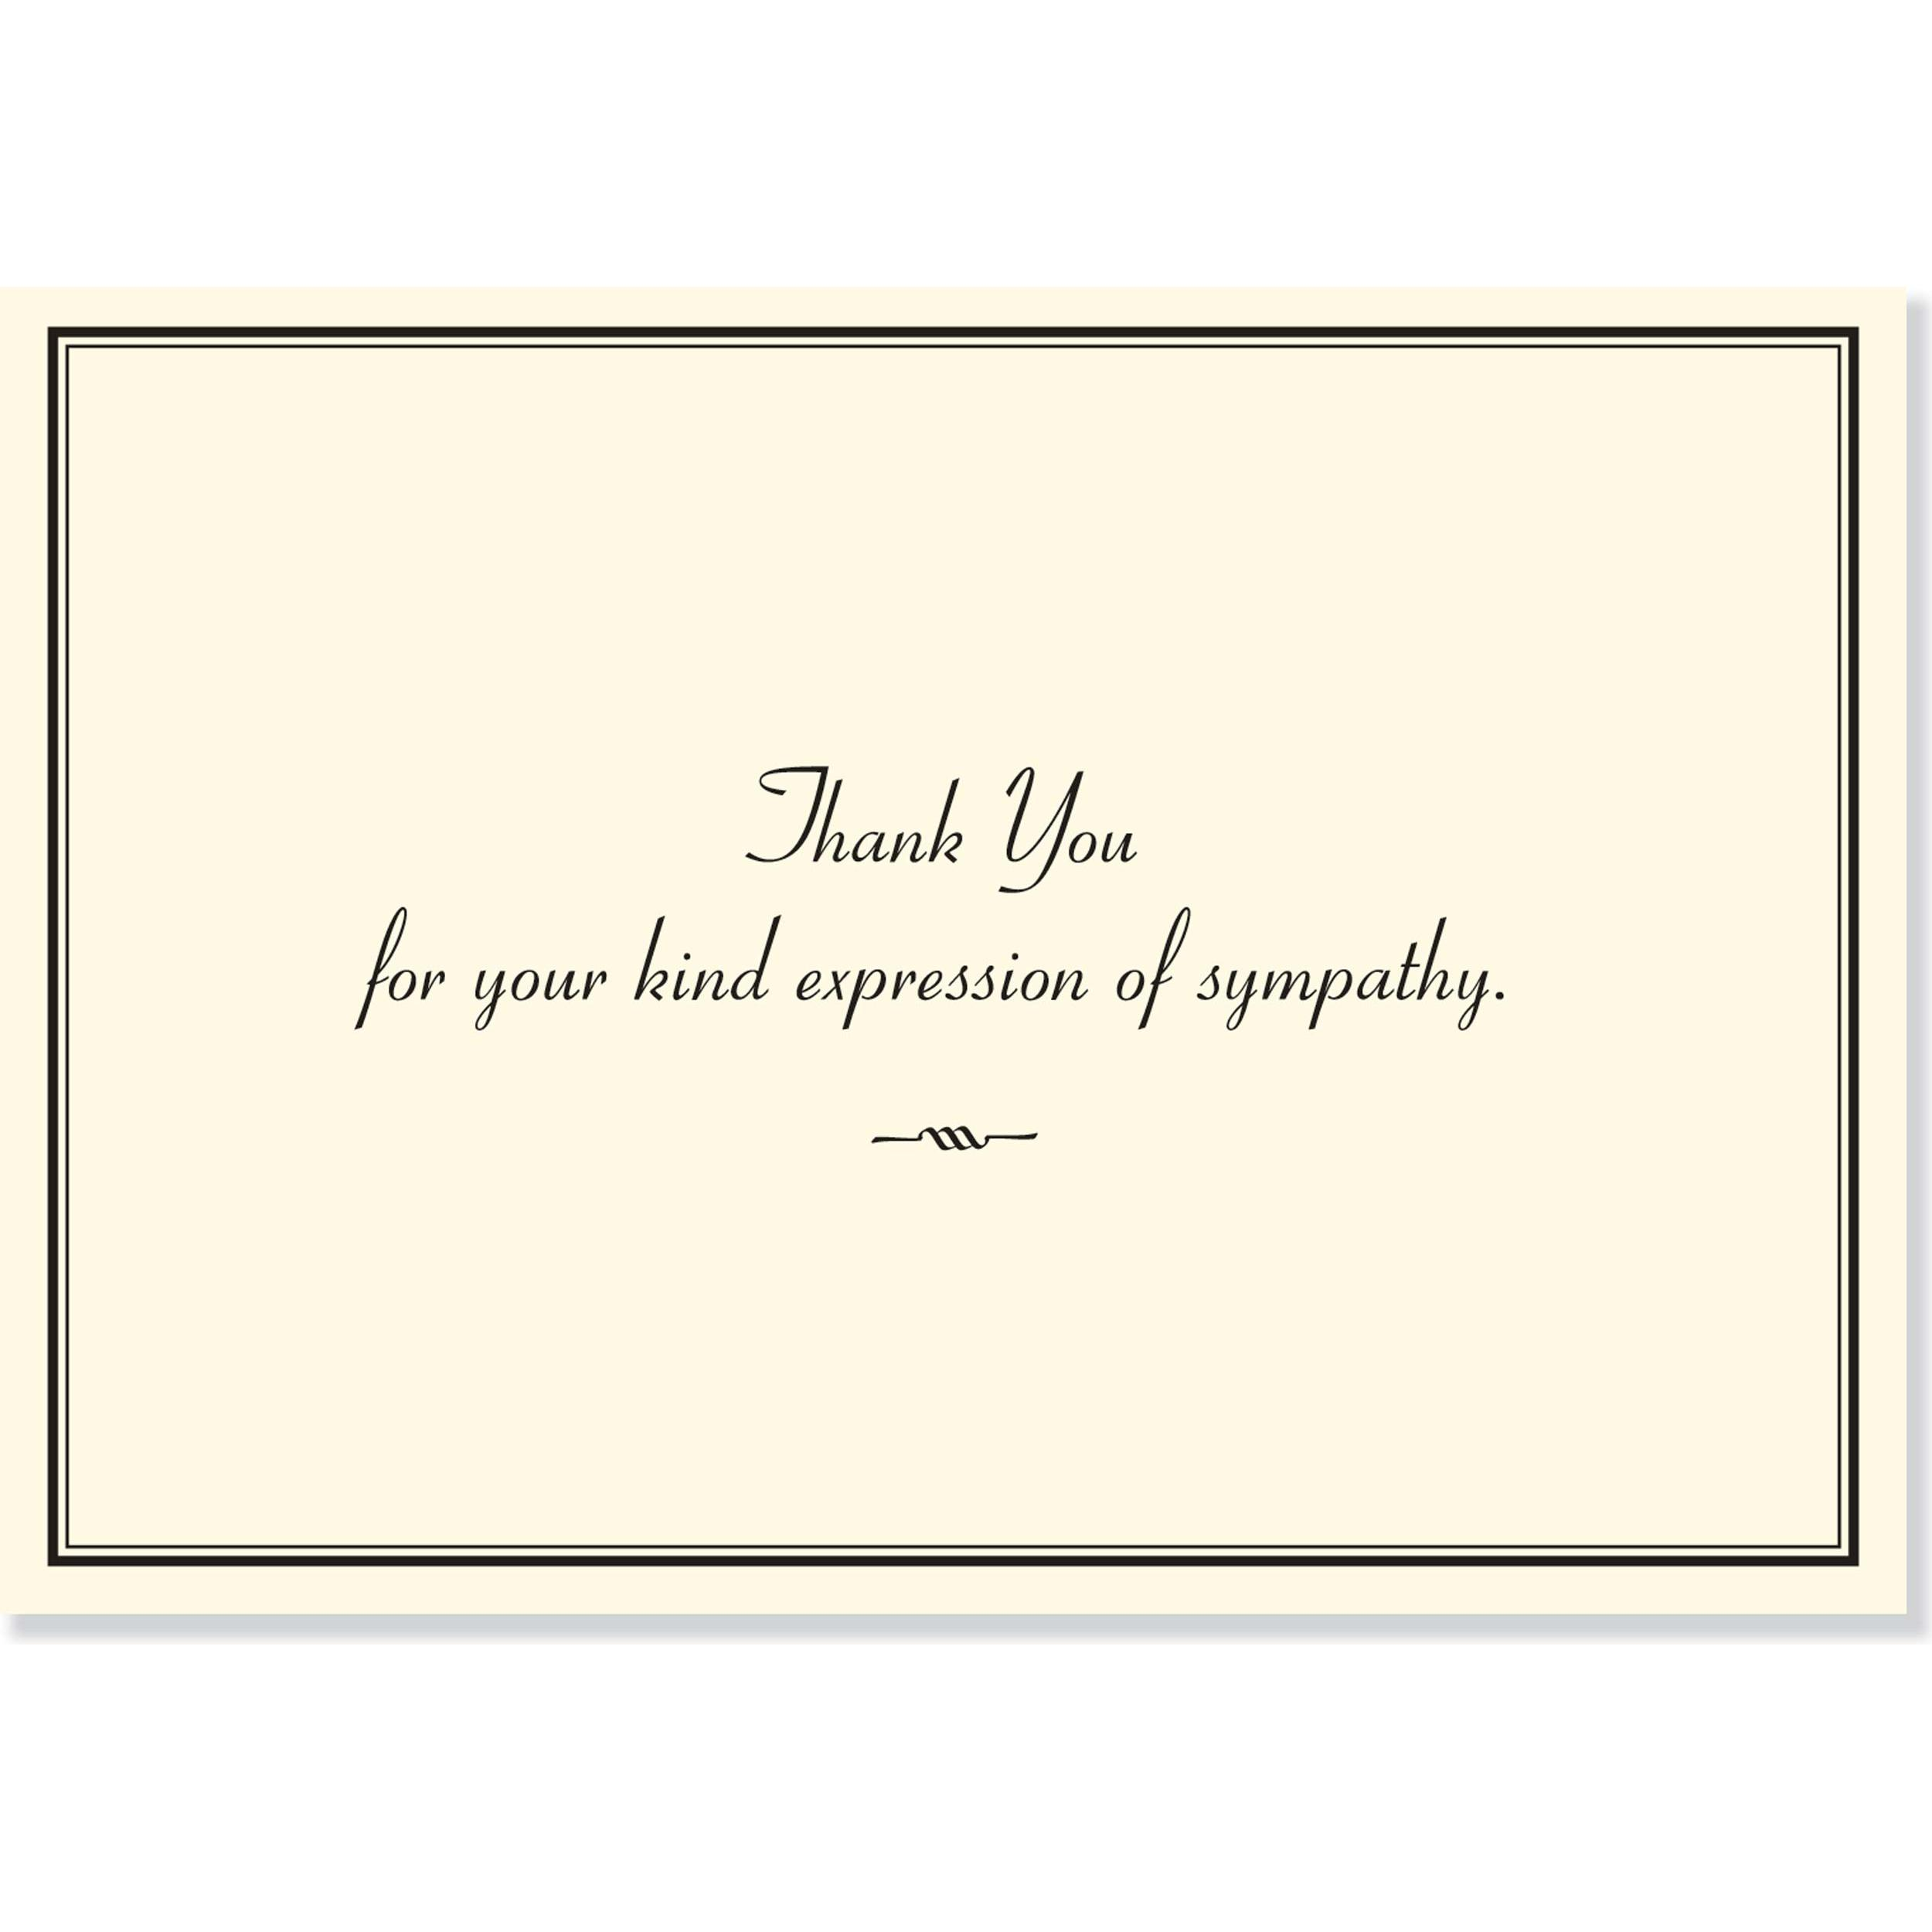 Sympathy thank you notes stationery note cards peter pauper view larger izmirmasajfo